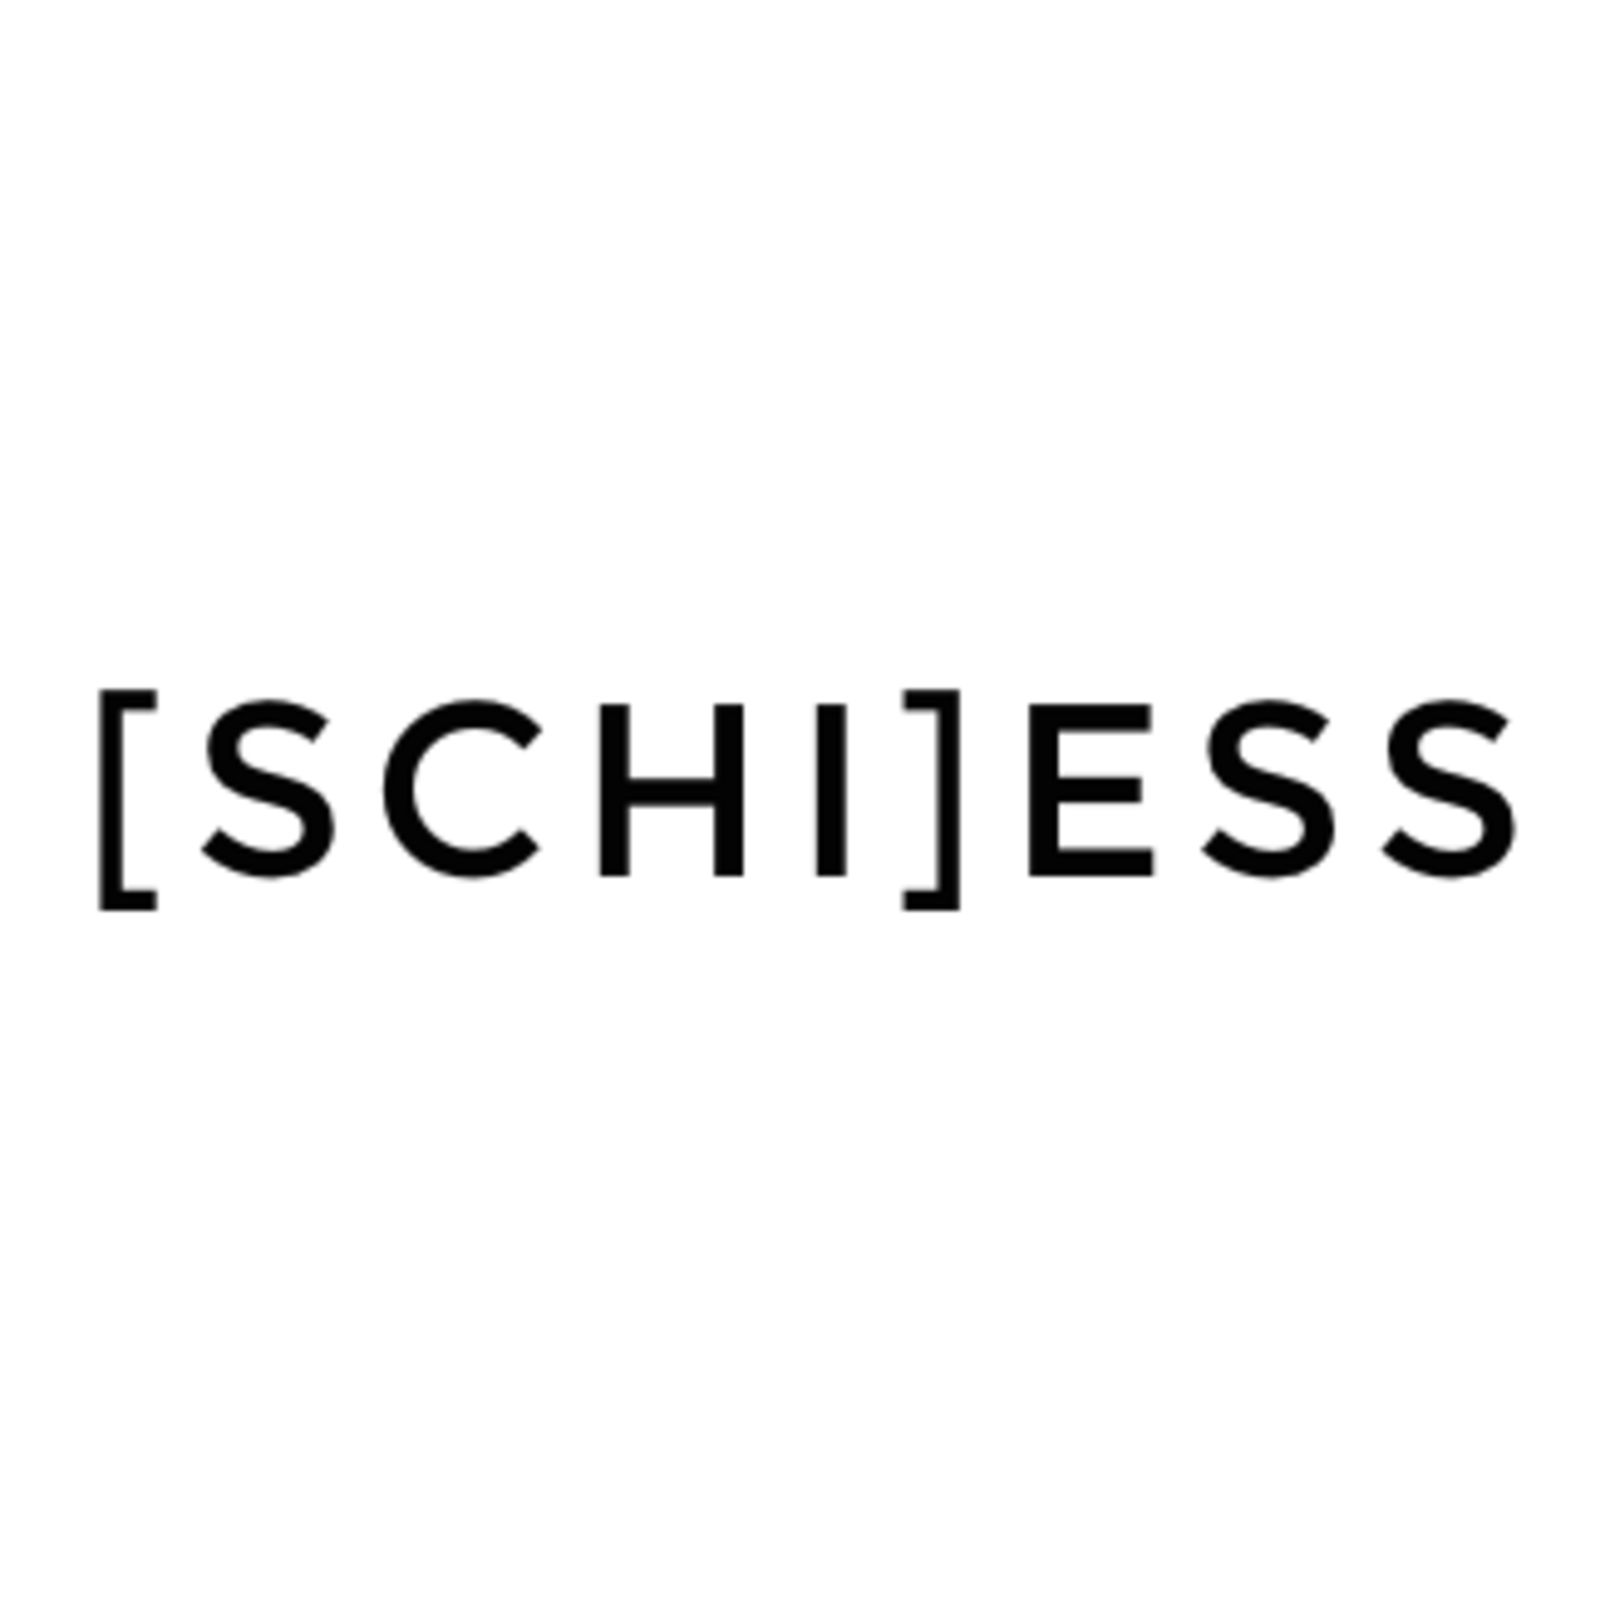 SCHIESS (Image 1)